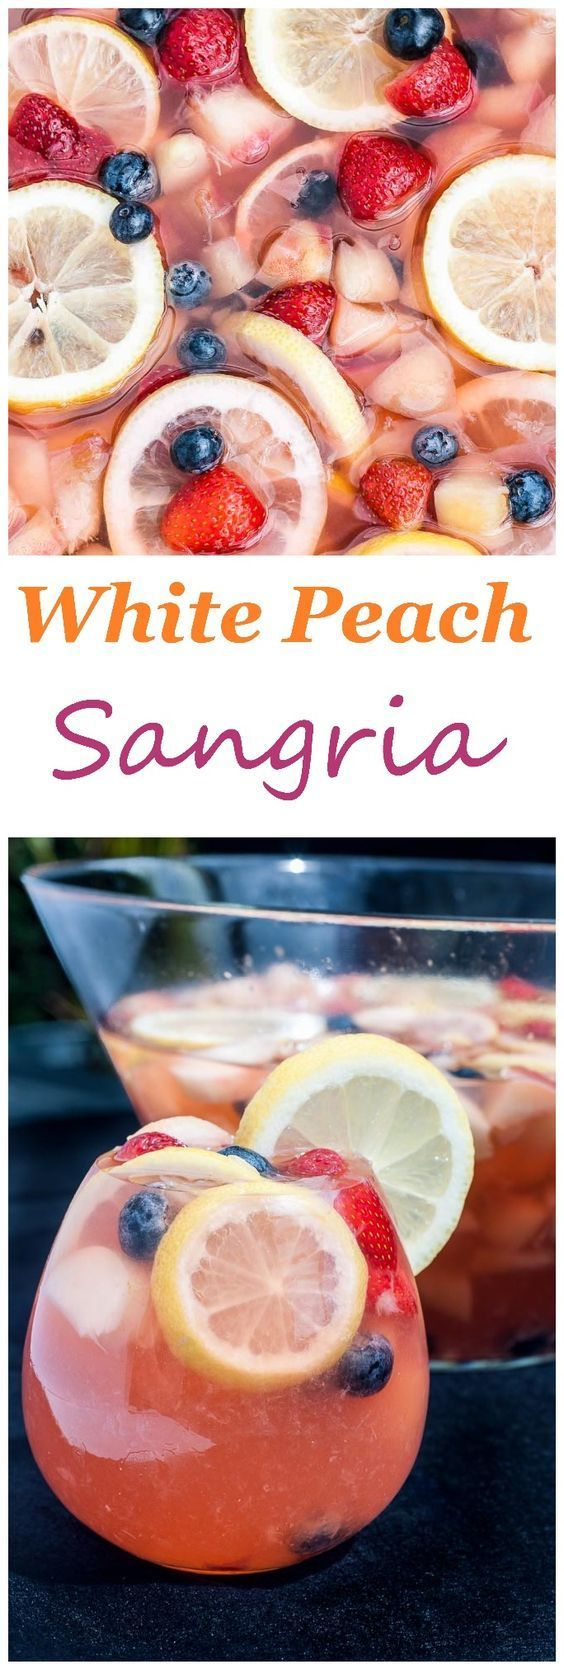 White Peach Sangria Recipe with White Wine, Blueberries, Strawberries and Lemon {wineglasswriter.com/}